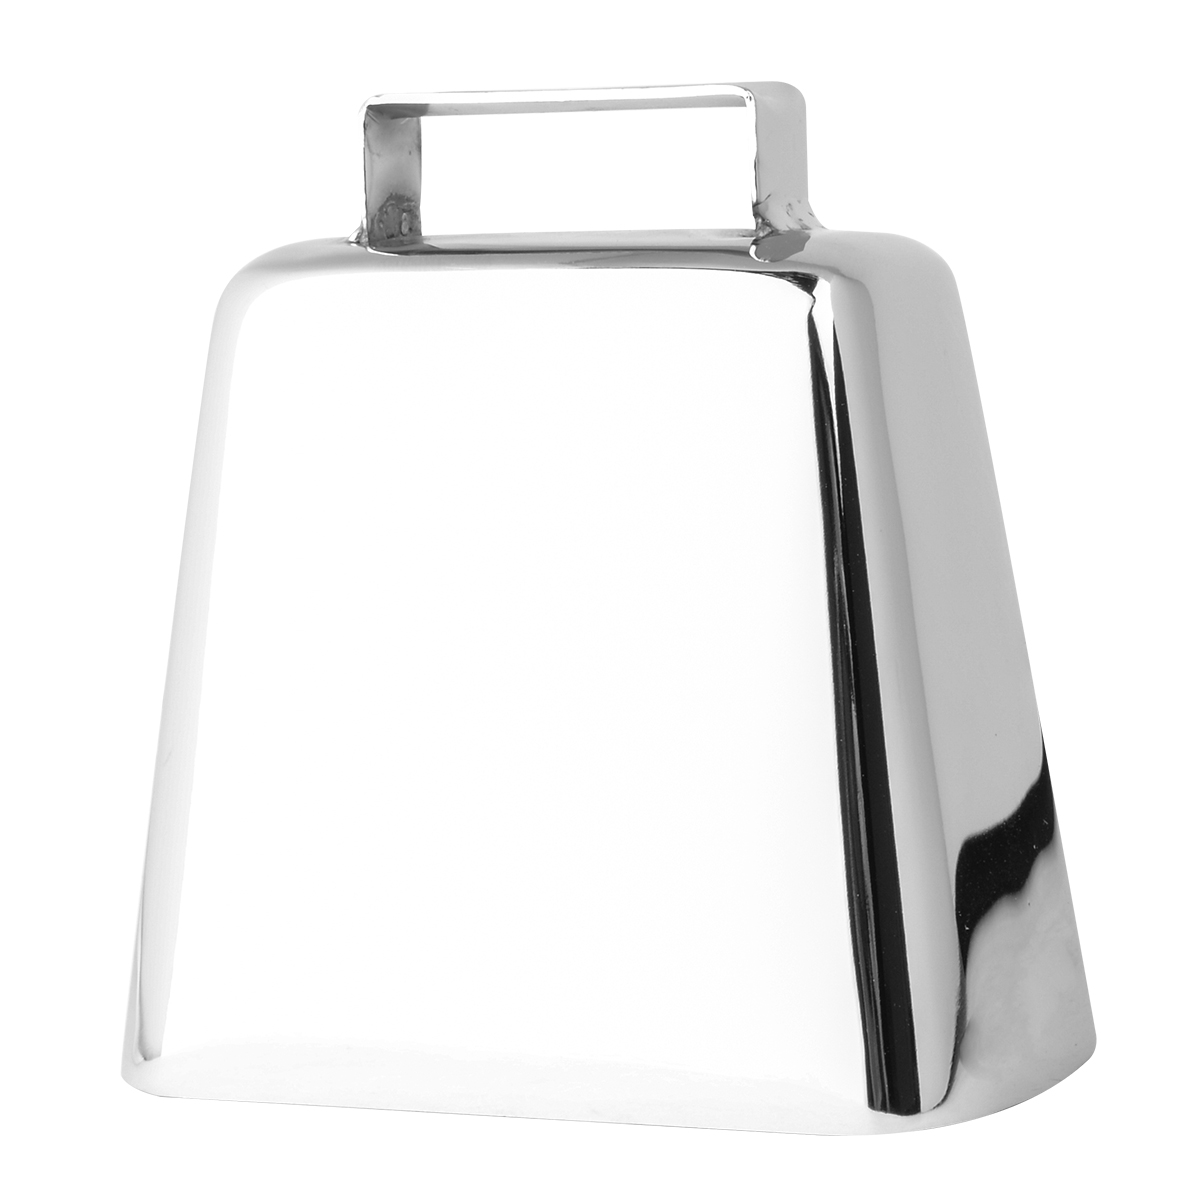 """#57300 Small Cow Bell - 4"""" (L) x 2 ⅜"""" (W) x 3 ¾"""" (H)"""